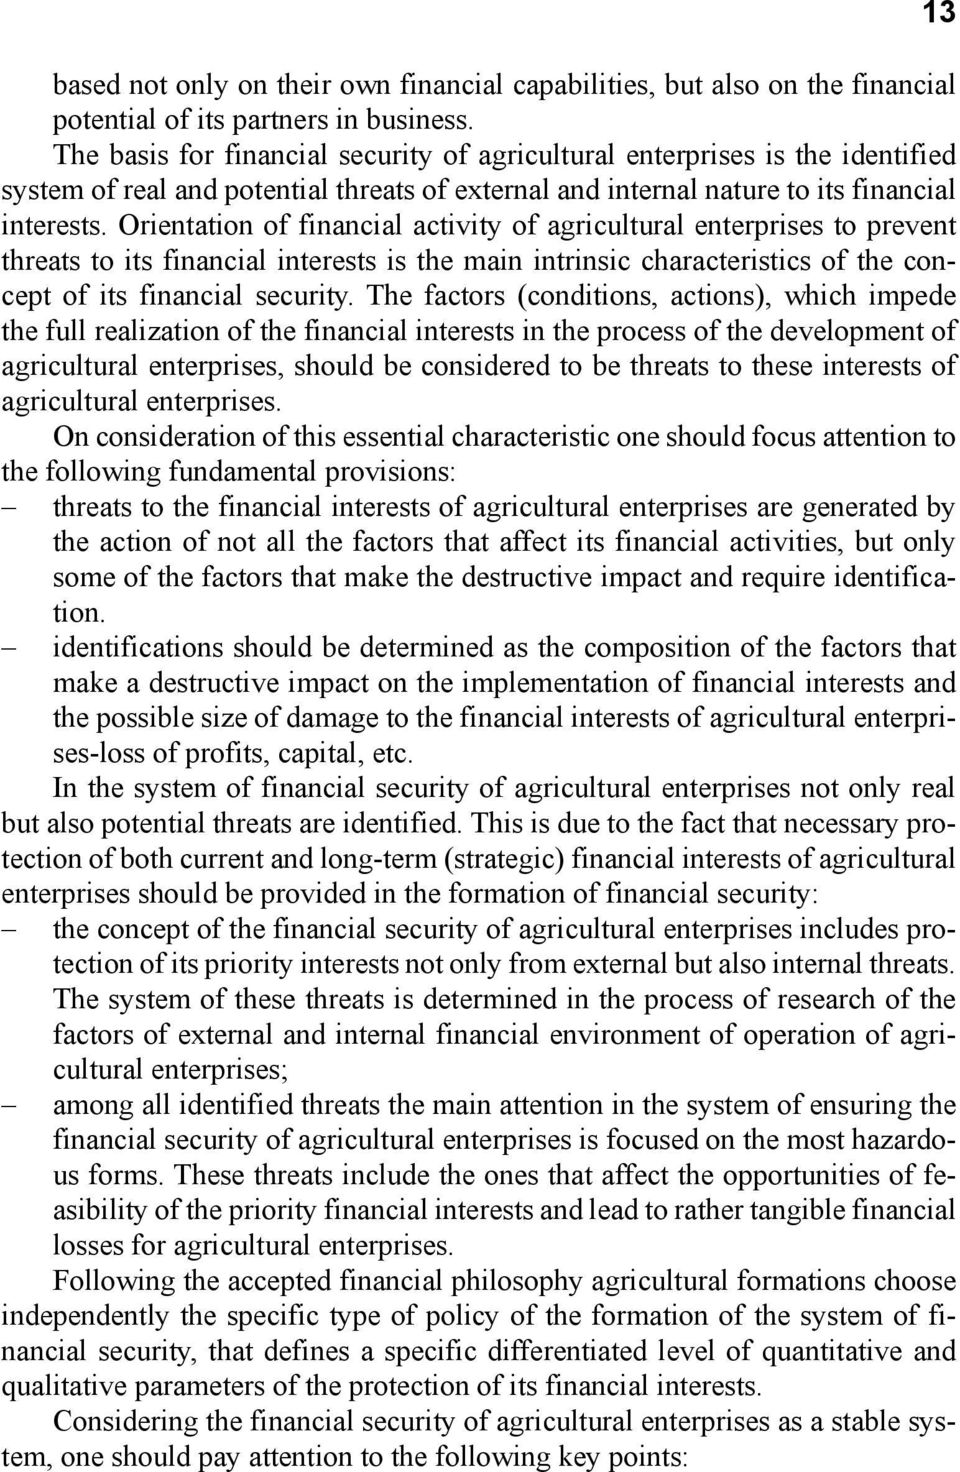 Orientation of financial activity of agricultural enterprises to prevent threats to its financial interests is the main intrinsic characteristics of the concept of its financial security.